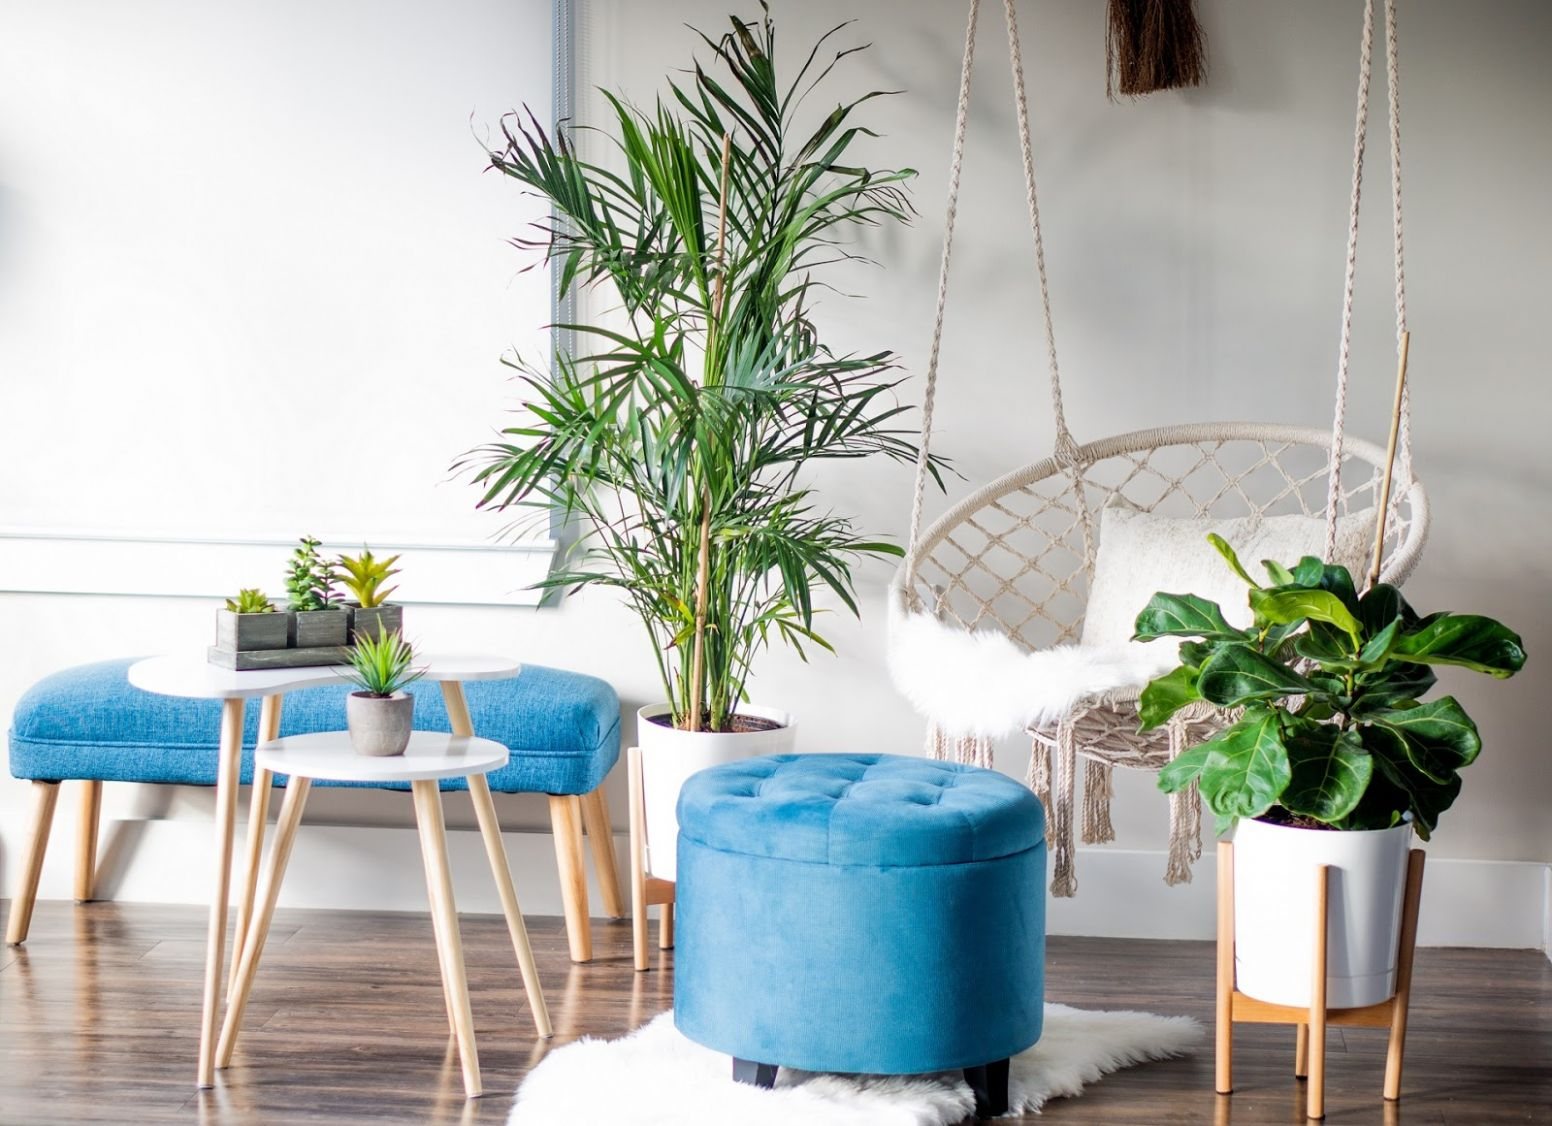 Get Inspired by Plant Home Decor   Oh to Be a Muse - home decor with plants